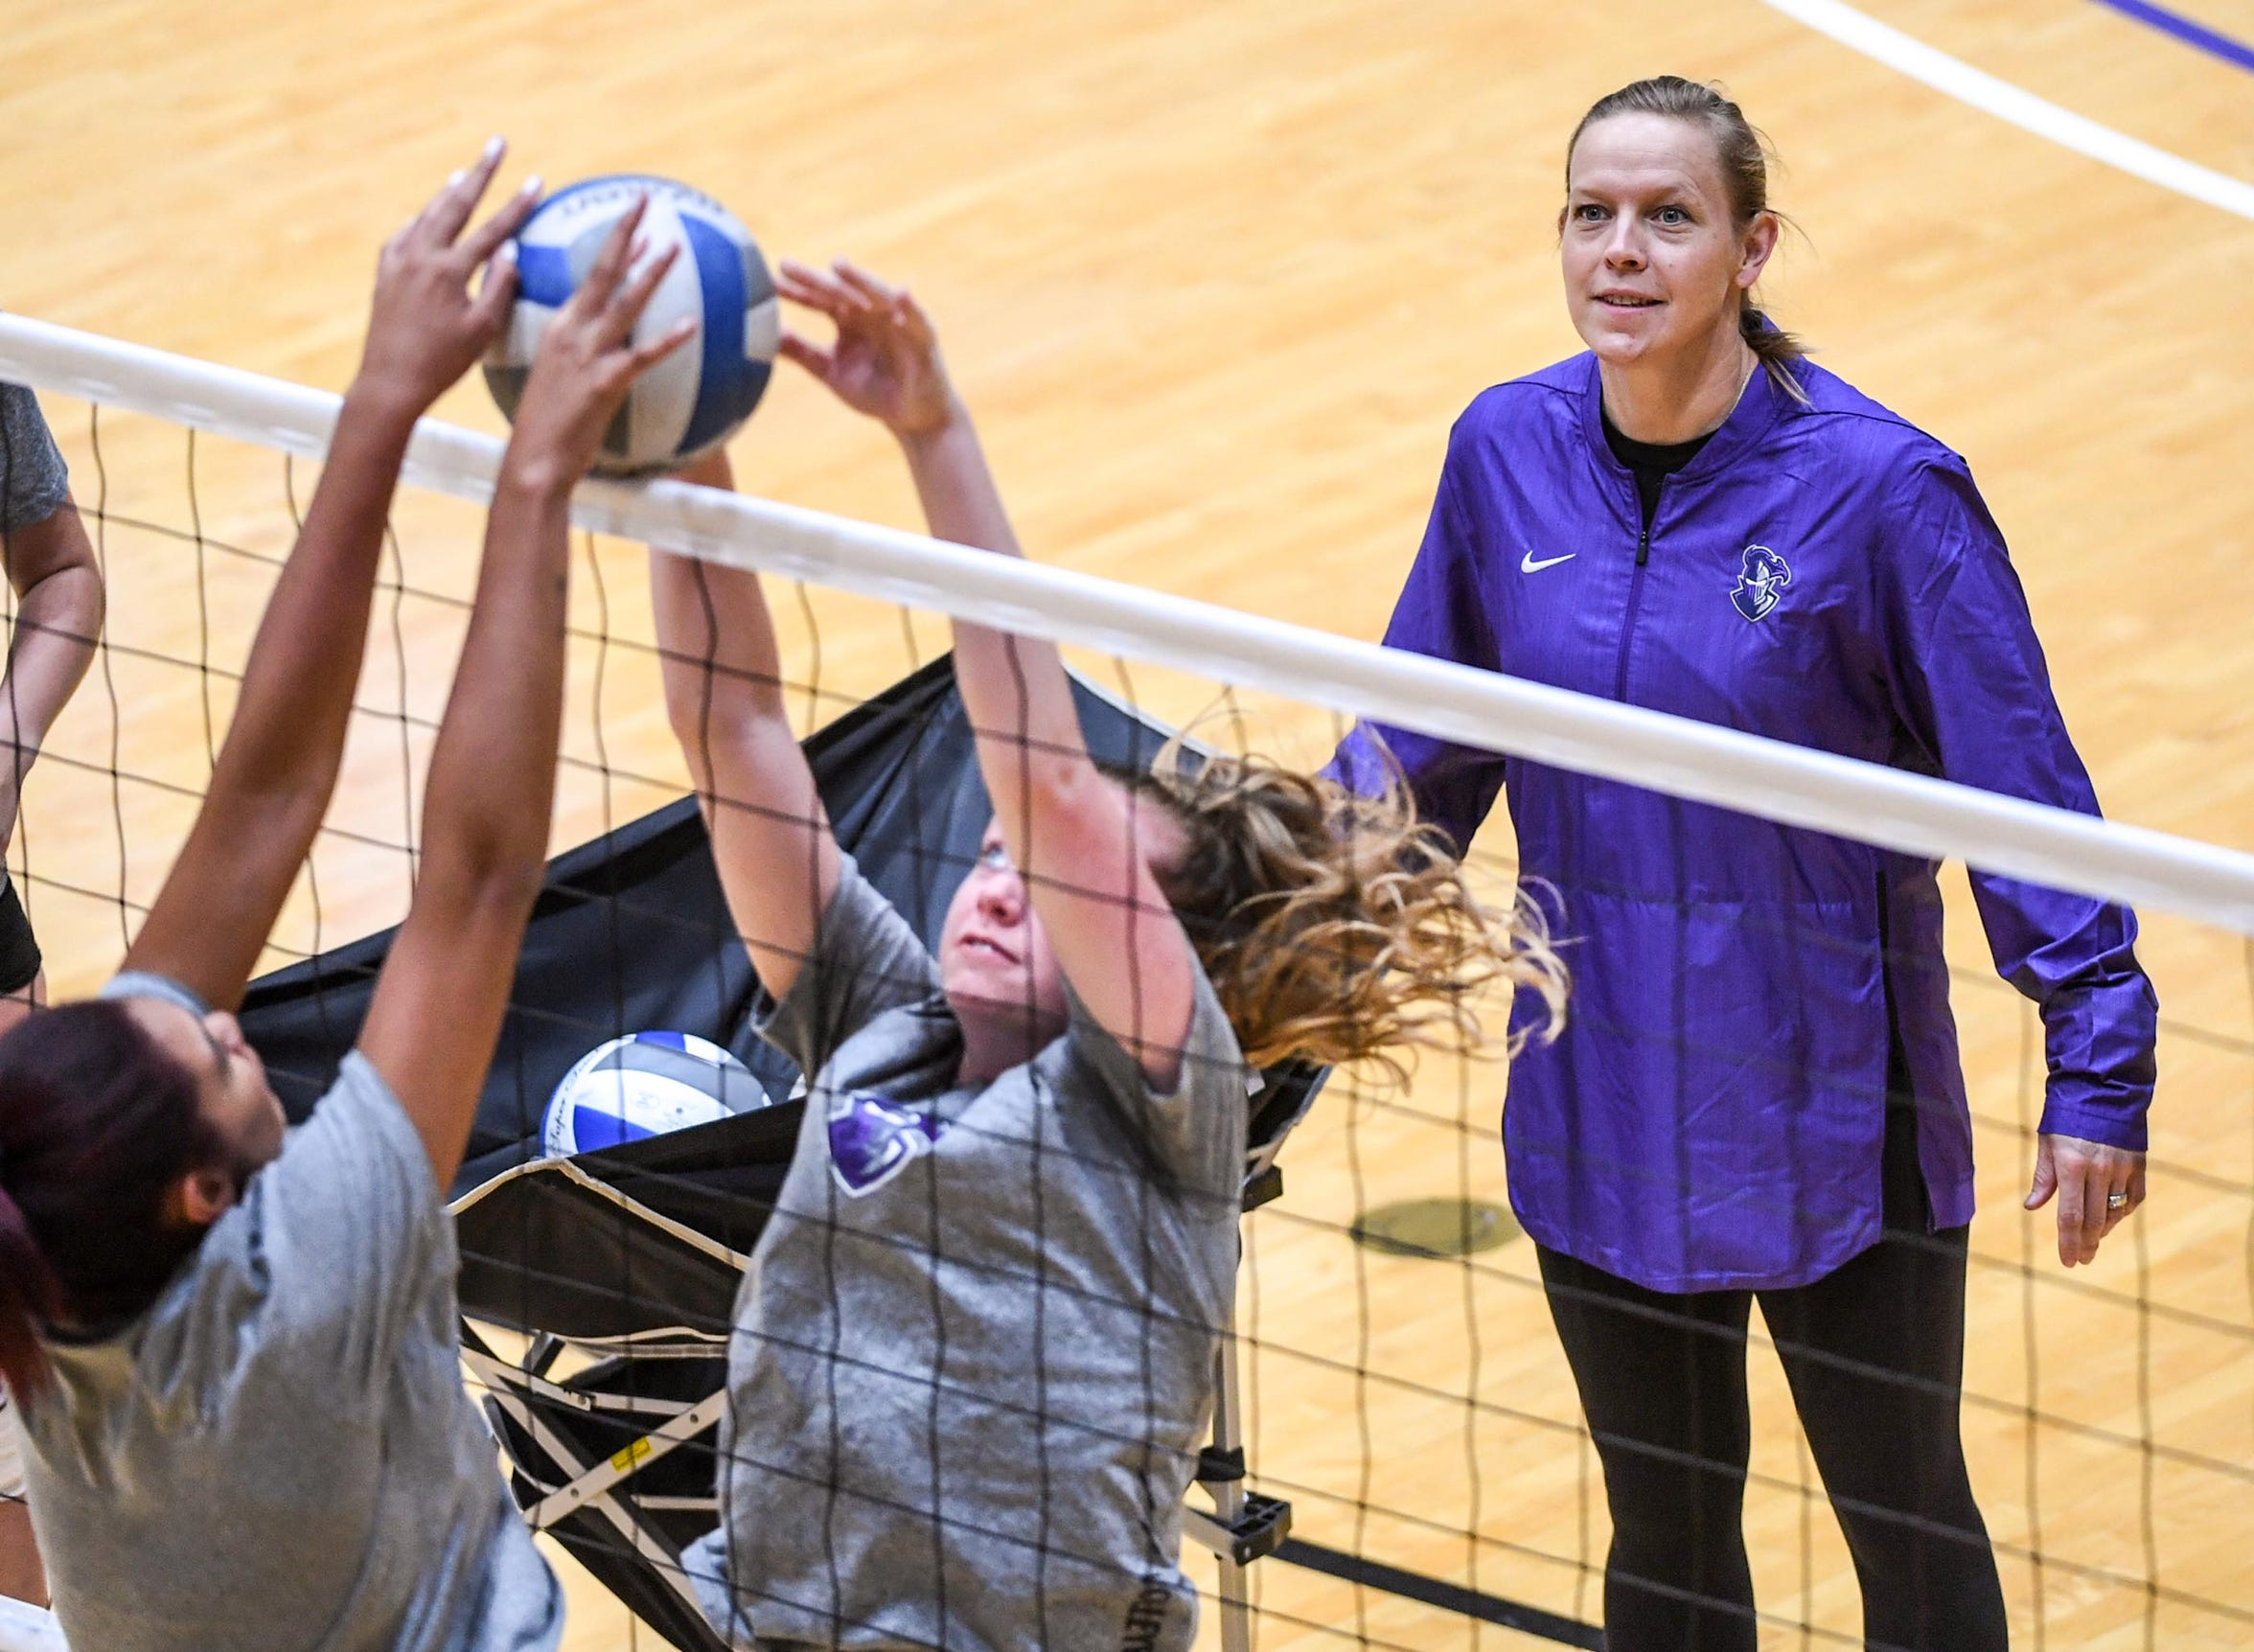 Michelle Young, Furman University volleyball coach, leads a practice at the school in Greenville on Thursday. She donated one of her kidneys to her husband Will Young, the Greer High School football coach.